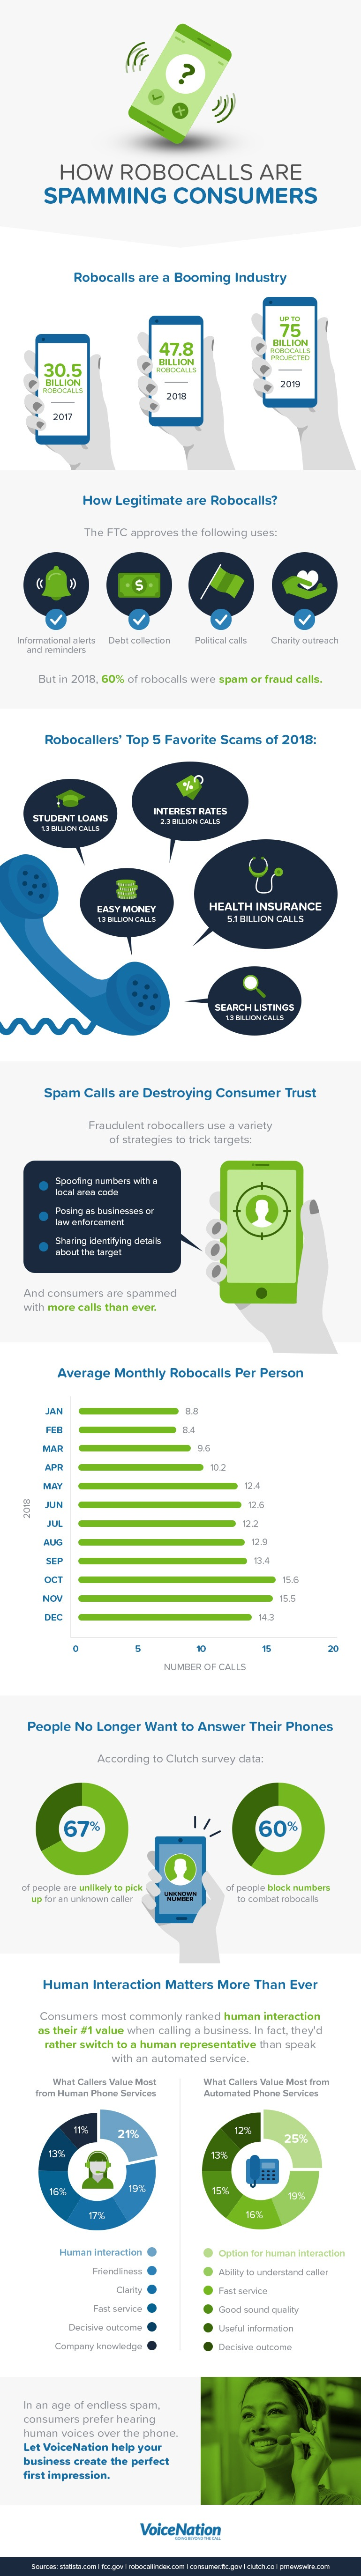 how robocalls are spamming customers infographic